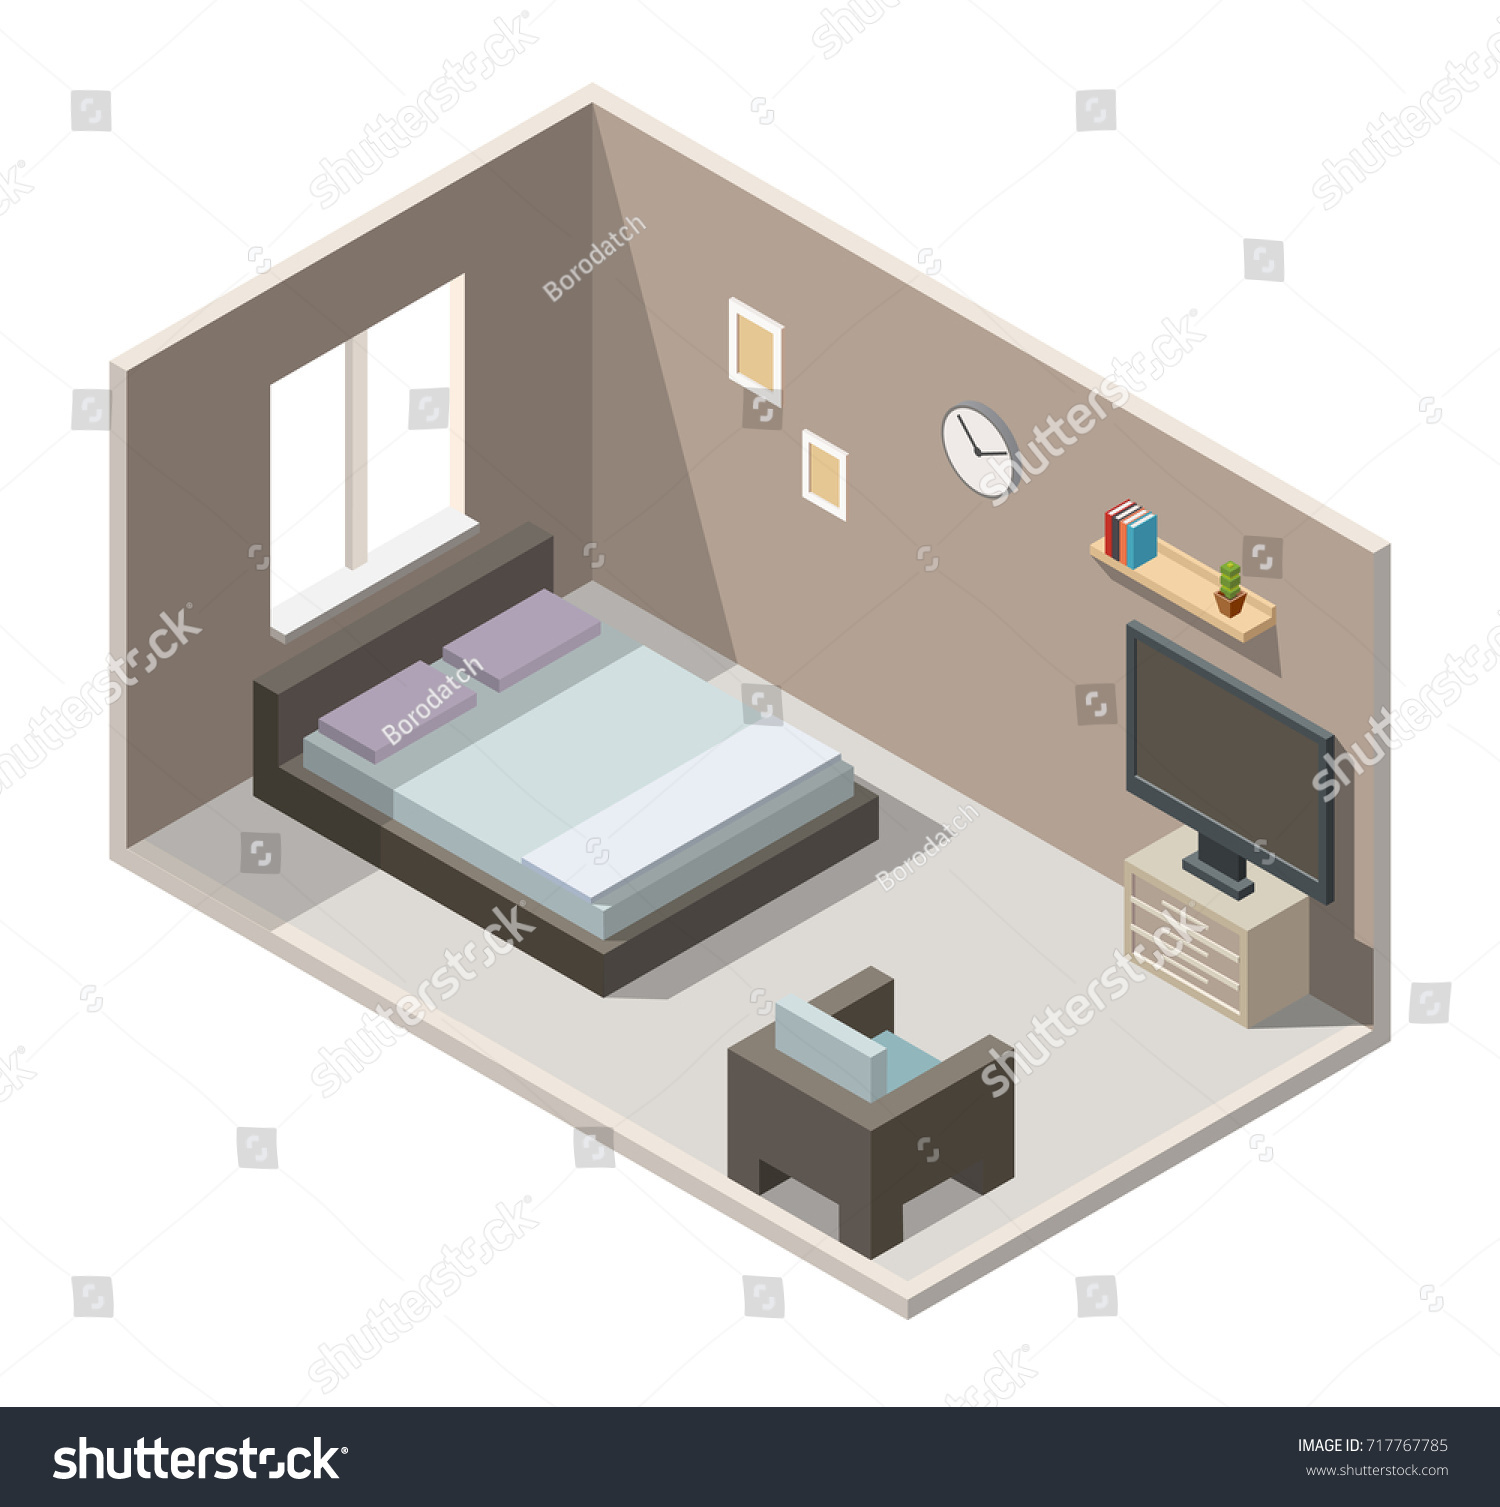 Bedroom Home Cinema Interior Isometric Stock Photo (Photo, Vector ...